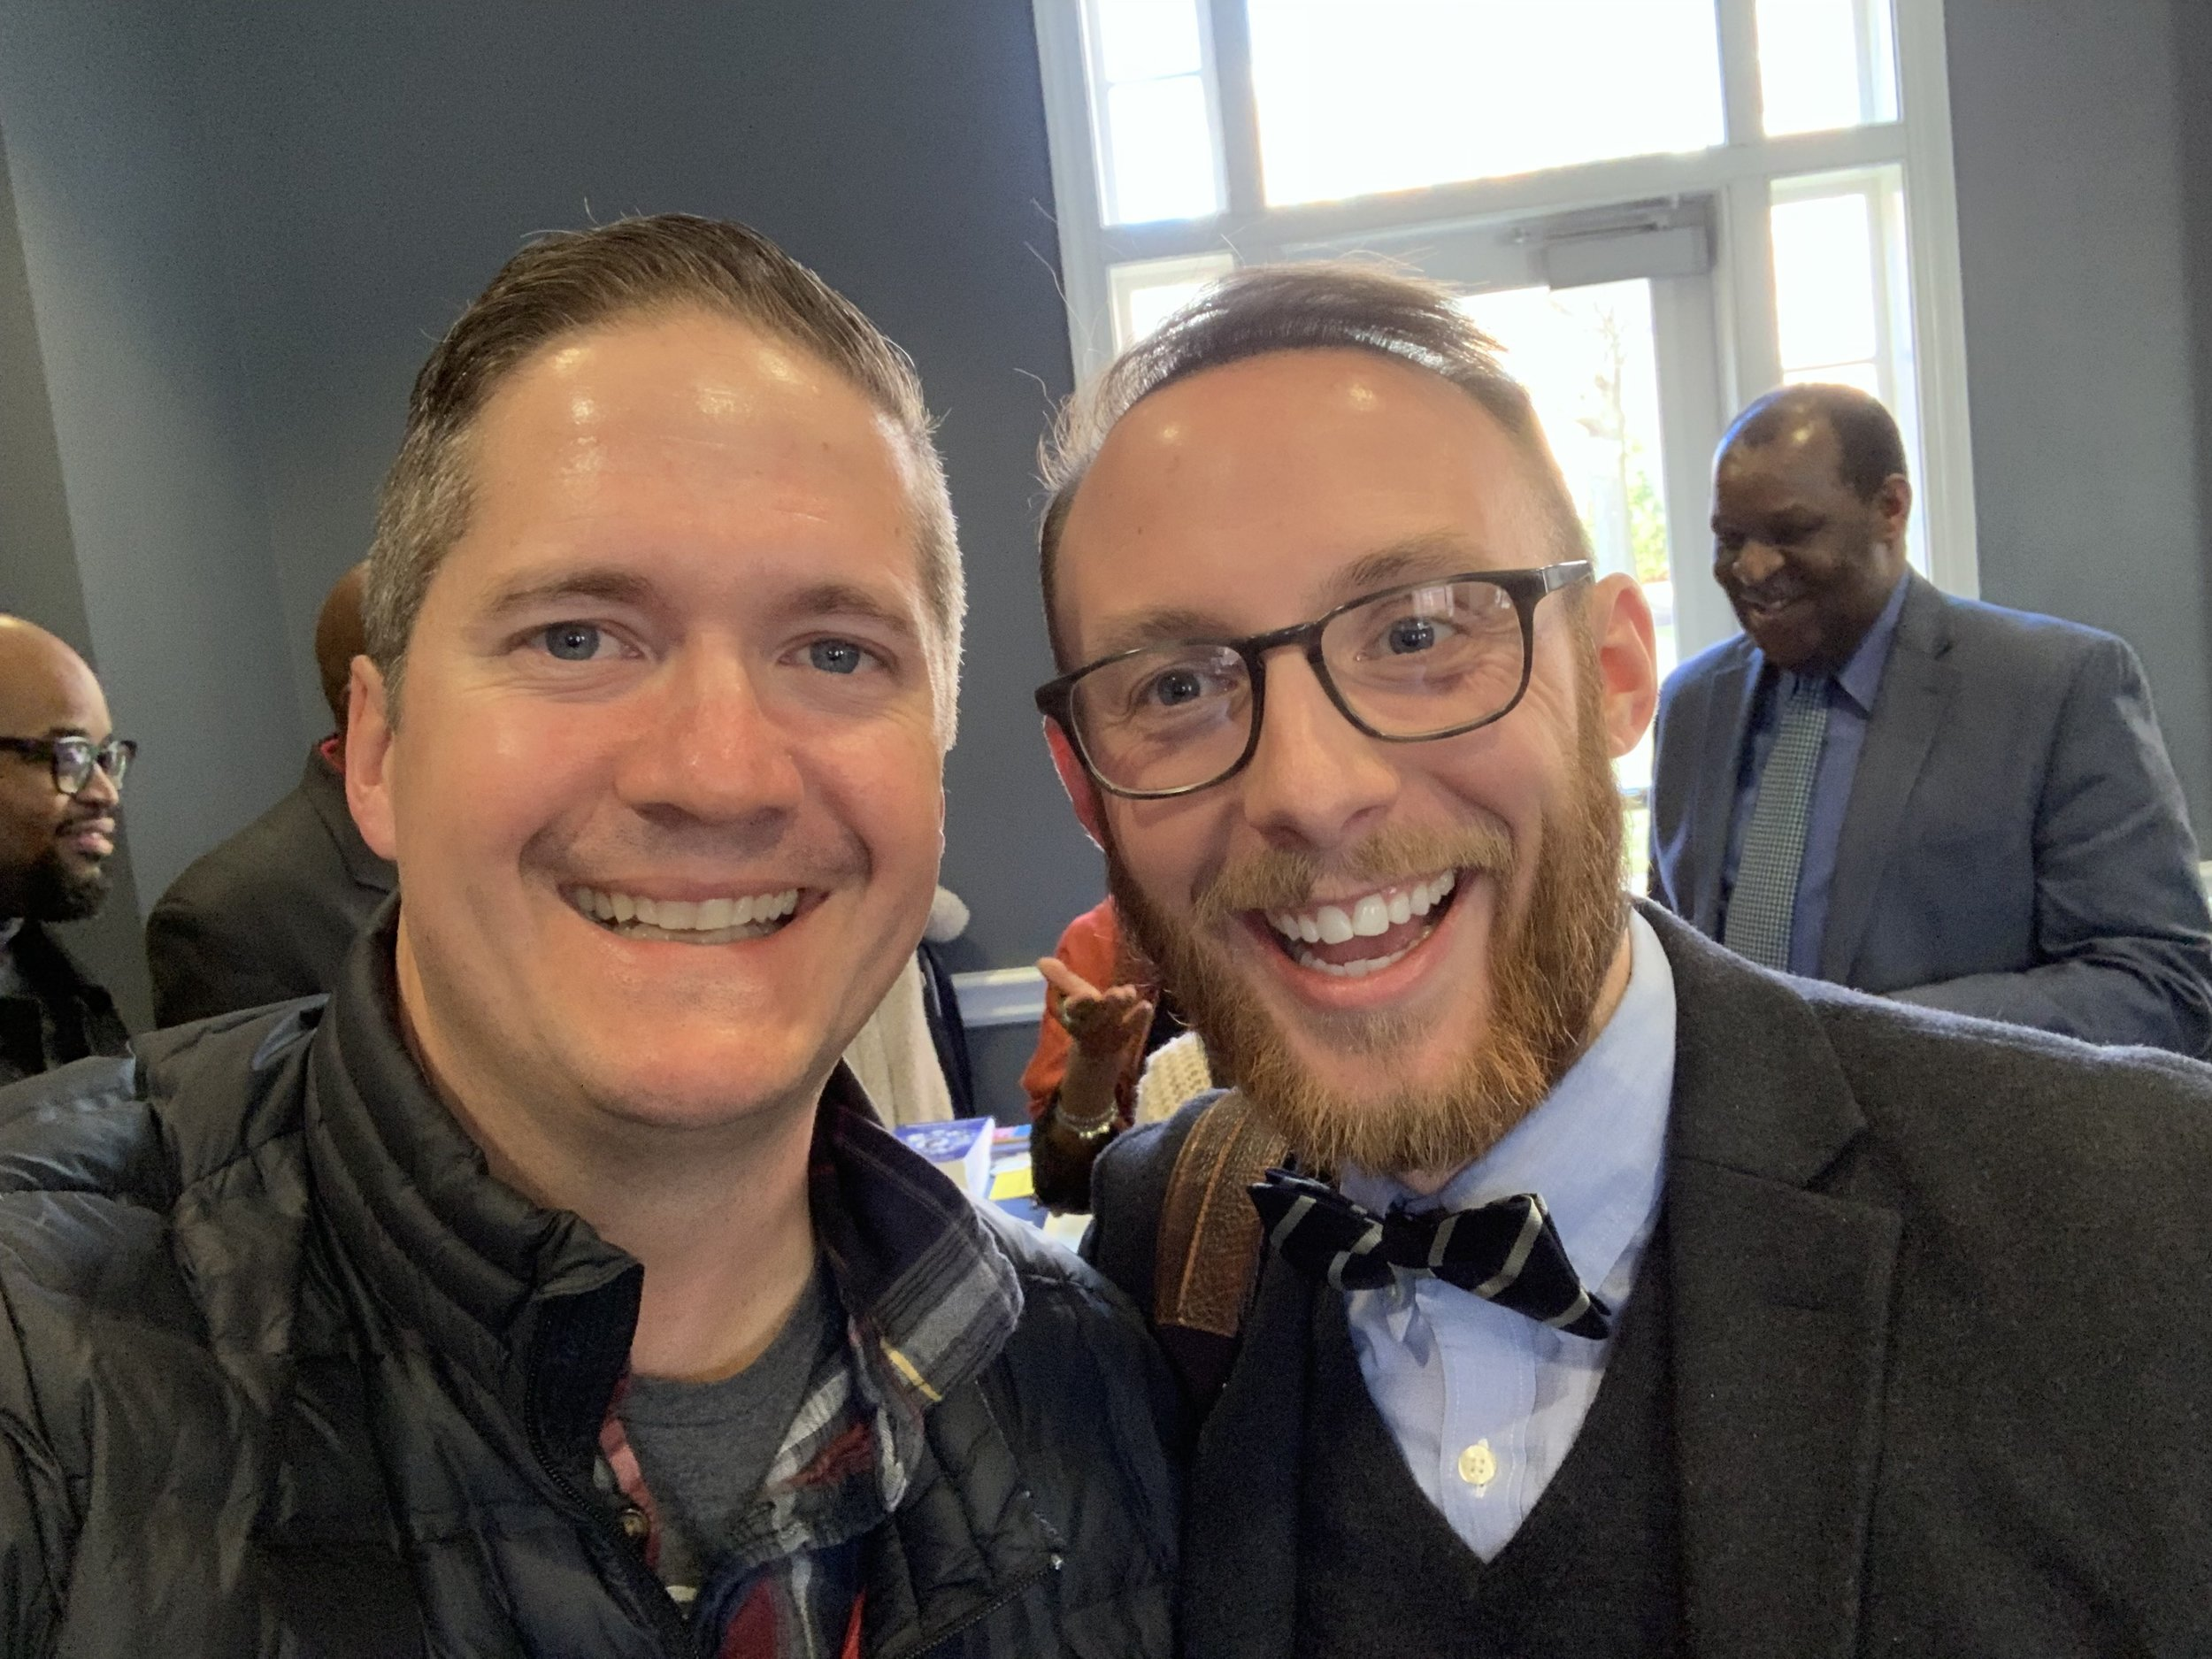 The event we were in DC for was at the University of Maryland for the Society for Pentecostal Studies. I even saw friends there that I had no idea I would see like Brenton Fessler my Pastor friend from Orange County, California. All in all, a great time in the Capital of the good 'ole U.S of A!